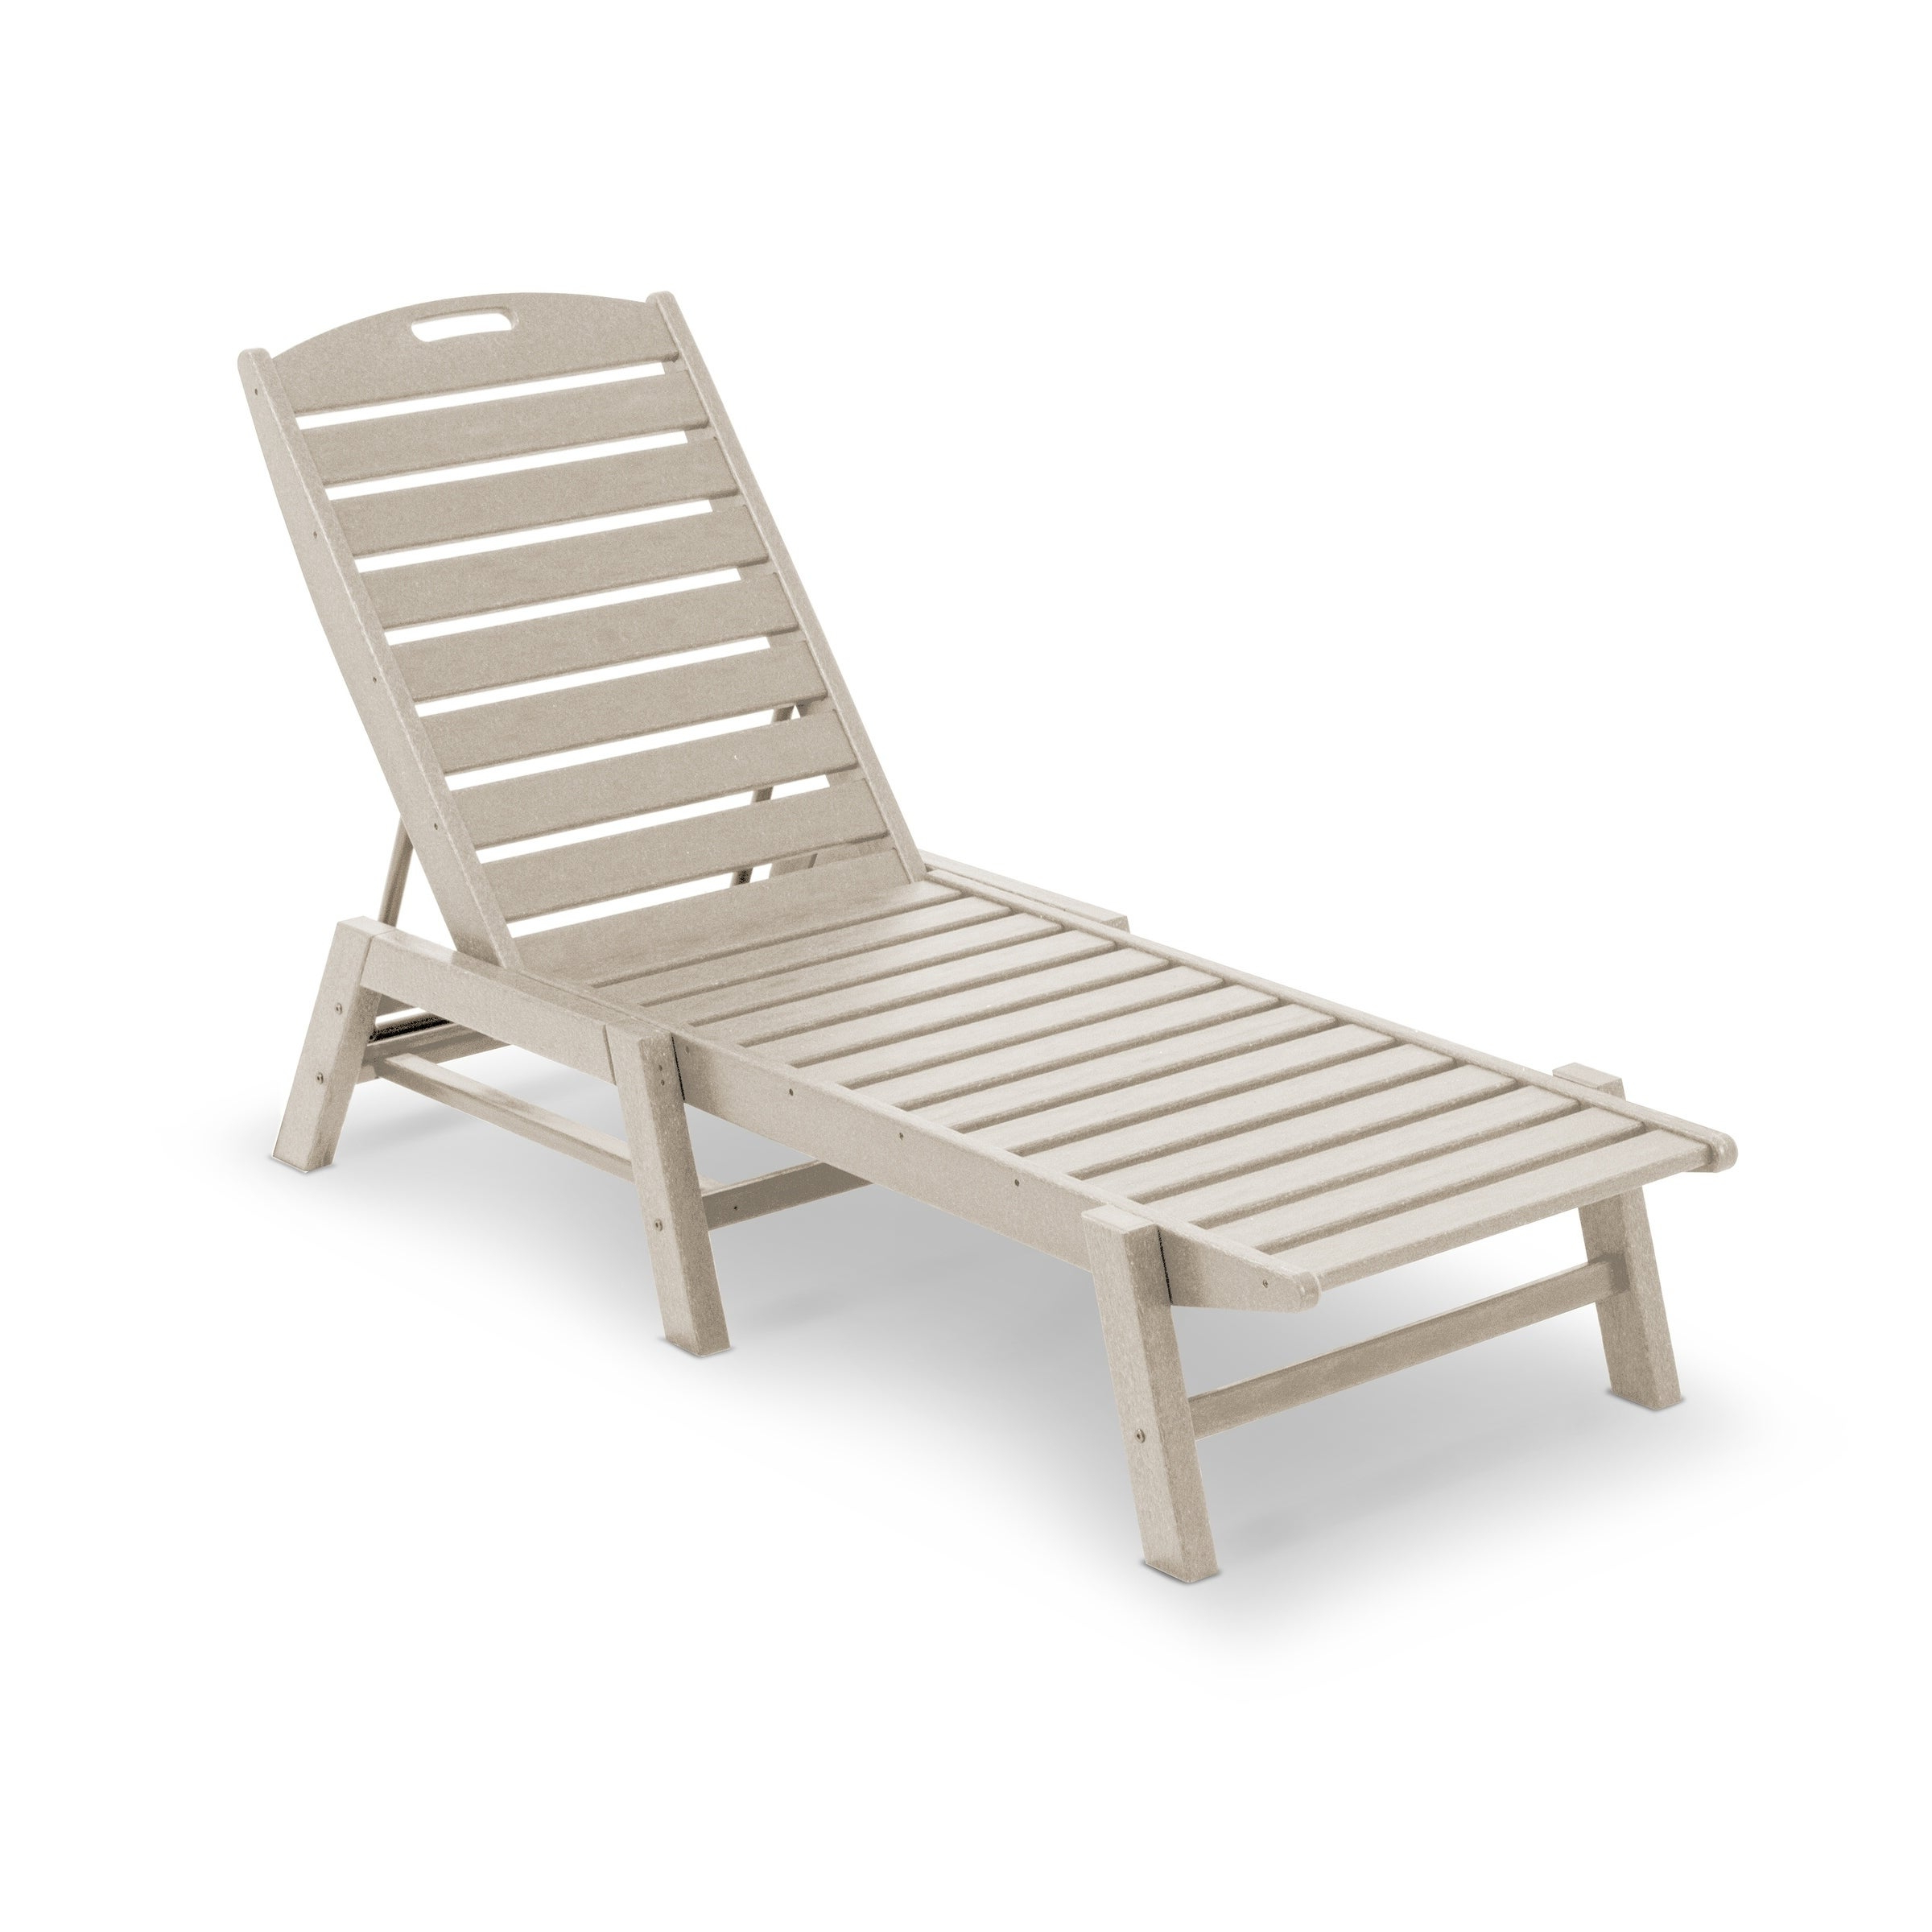 Trendy Nautical 3 Piece Outdoor Chaise Lounge Sets With Wheels And Table Within Polywood® Nautical Outdoor Chaise Lounge, Stackable (View 13 of 25)